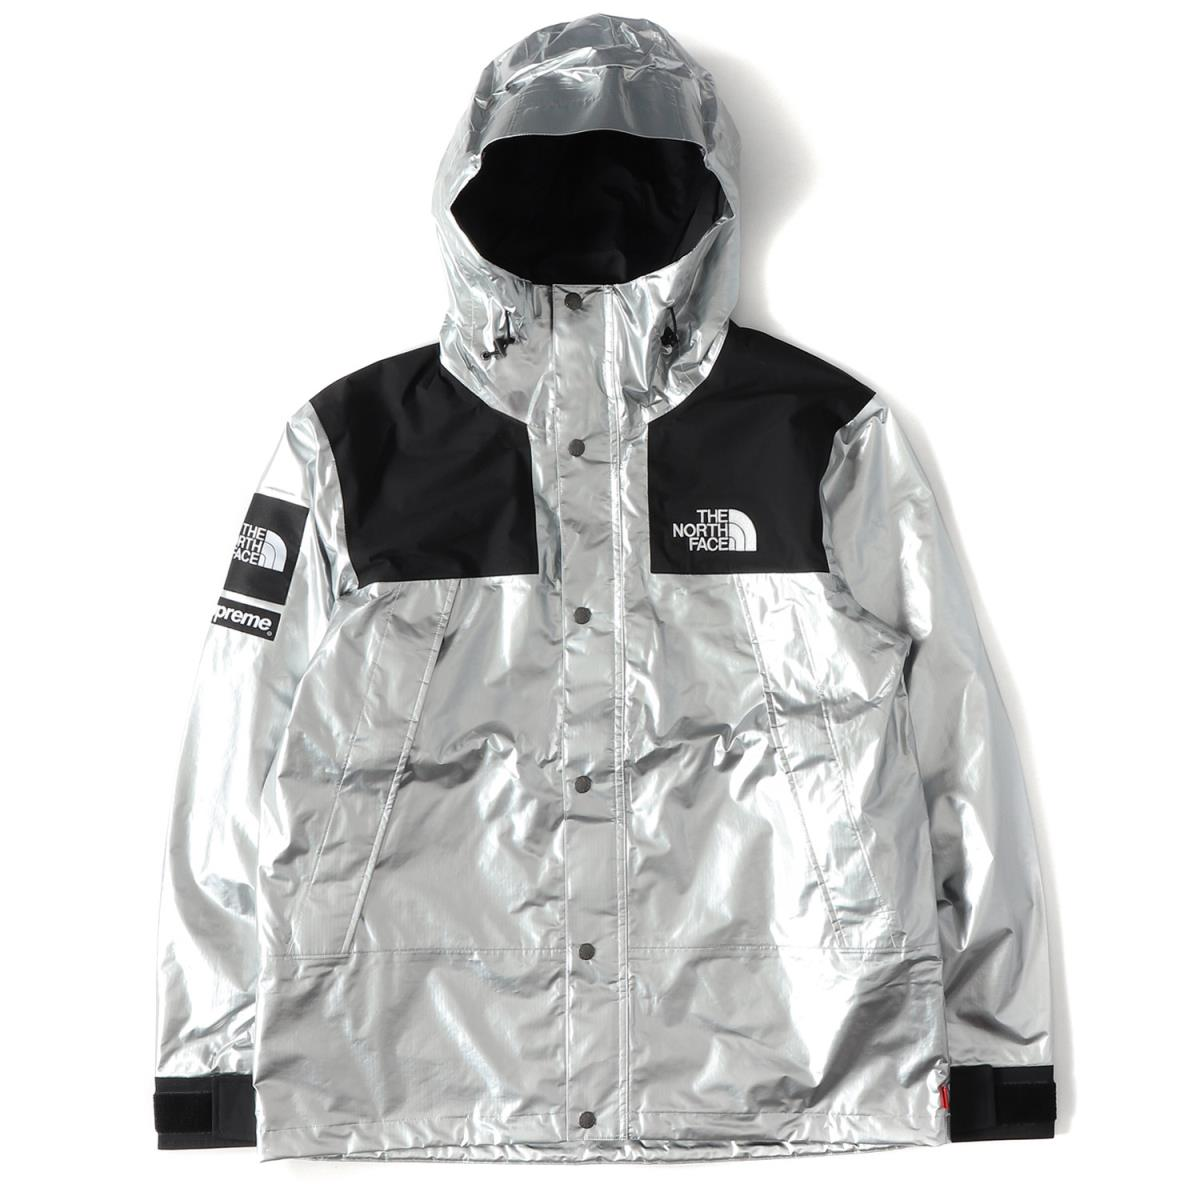 90ca869eb Supreme (シュプリーム) 18SS X THE NORTH FACE metallic mountain parka (Metallic  Mountain Parka) silver metallic M